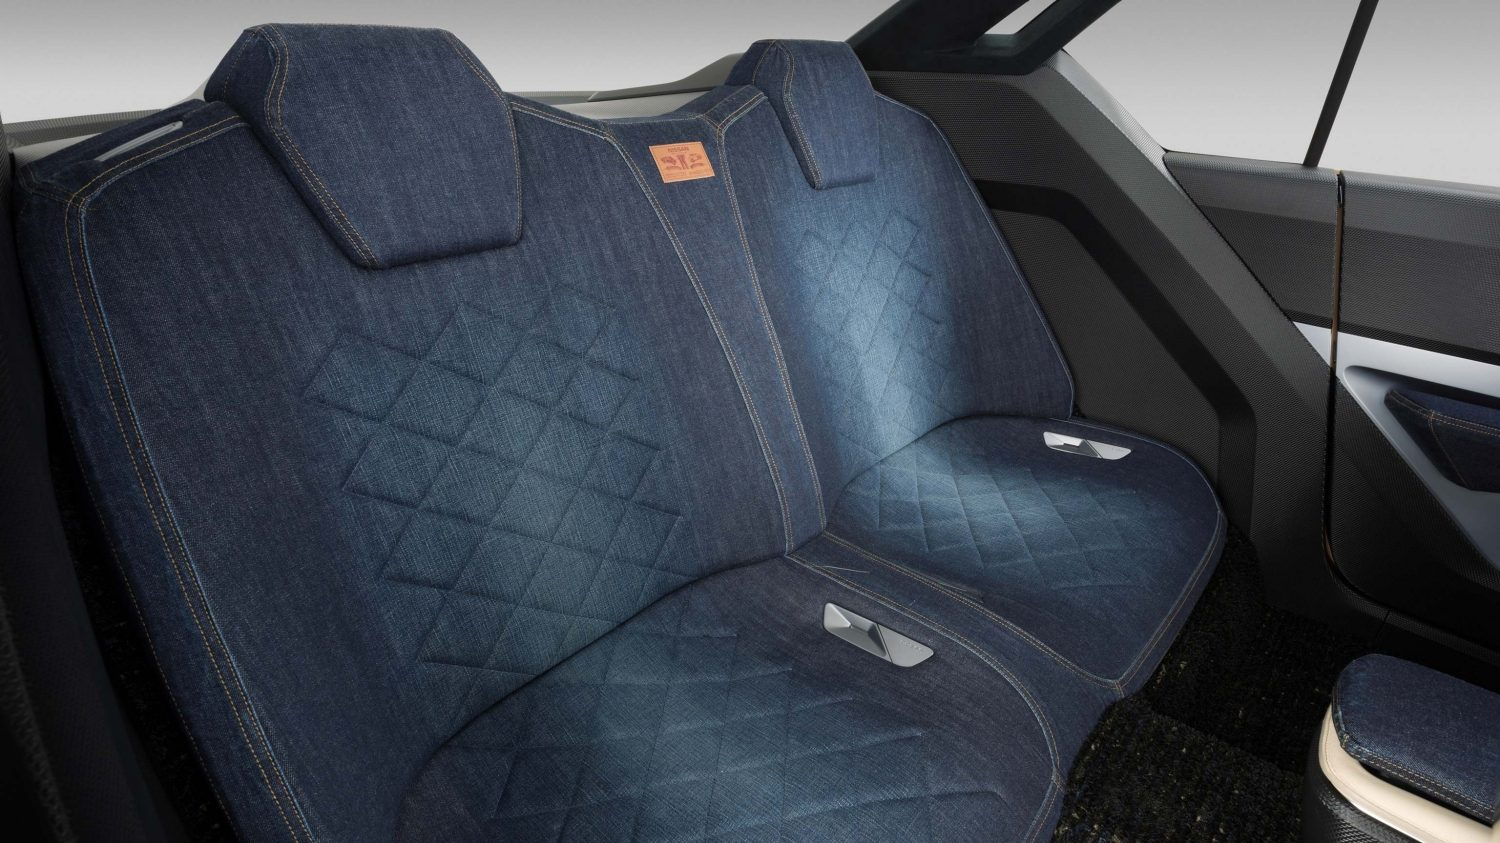 Nissan IDX Freeflow Concept denim rear seats